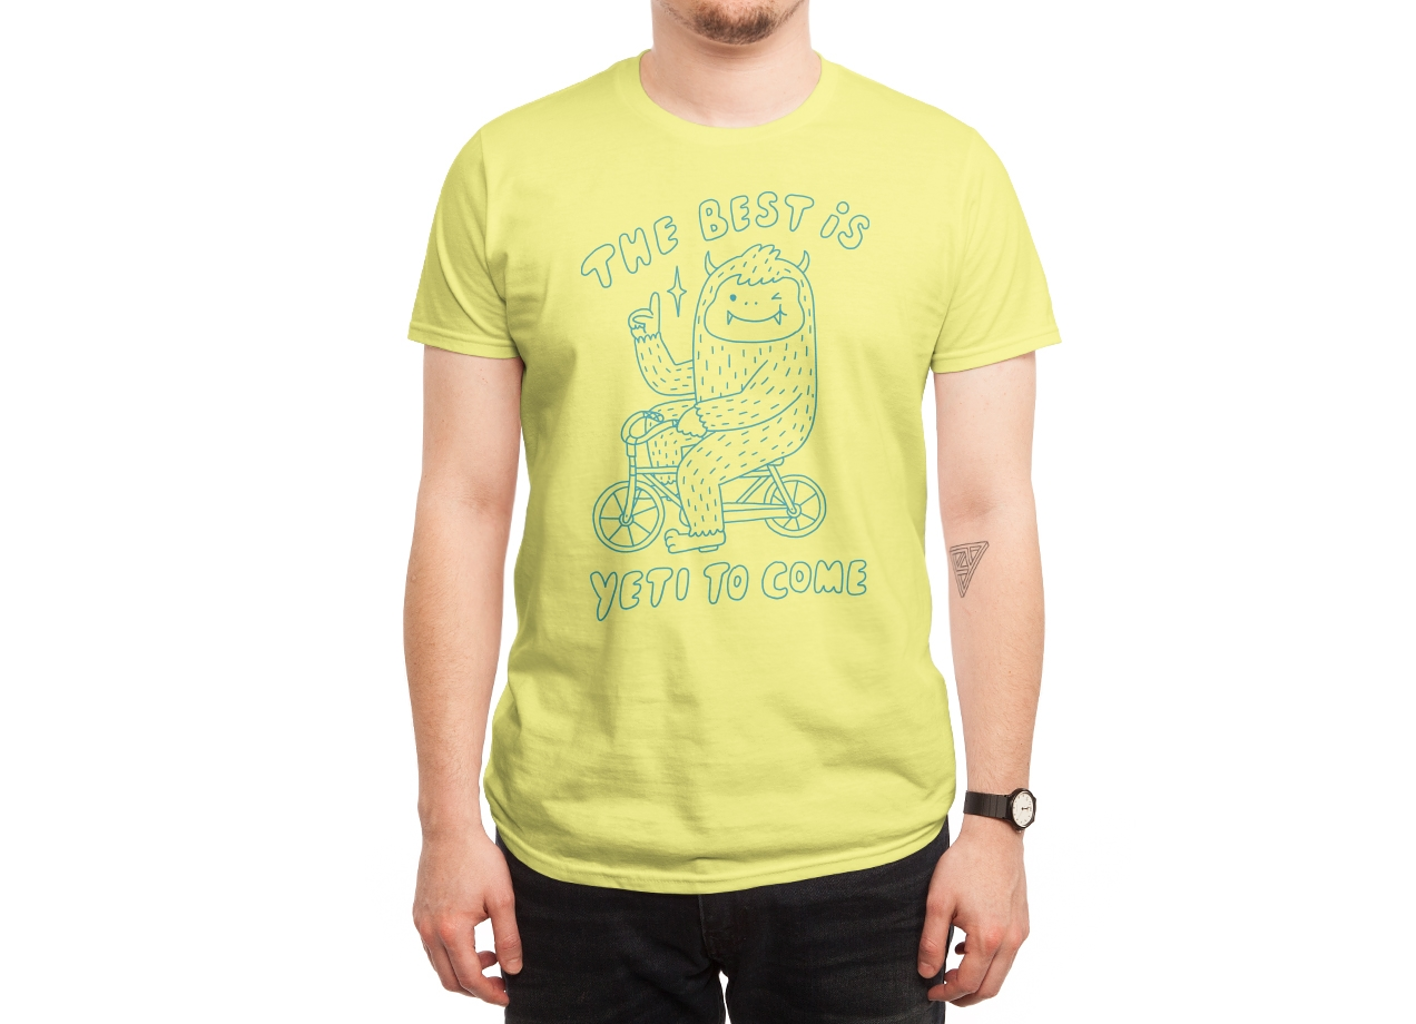 Threadless: The best is Yeti to come